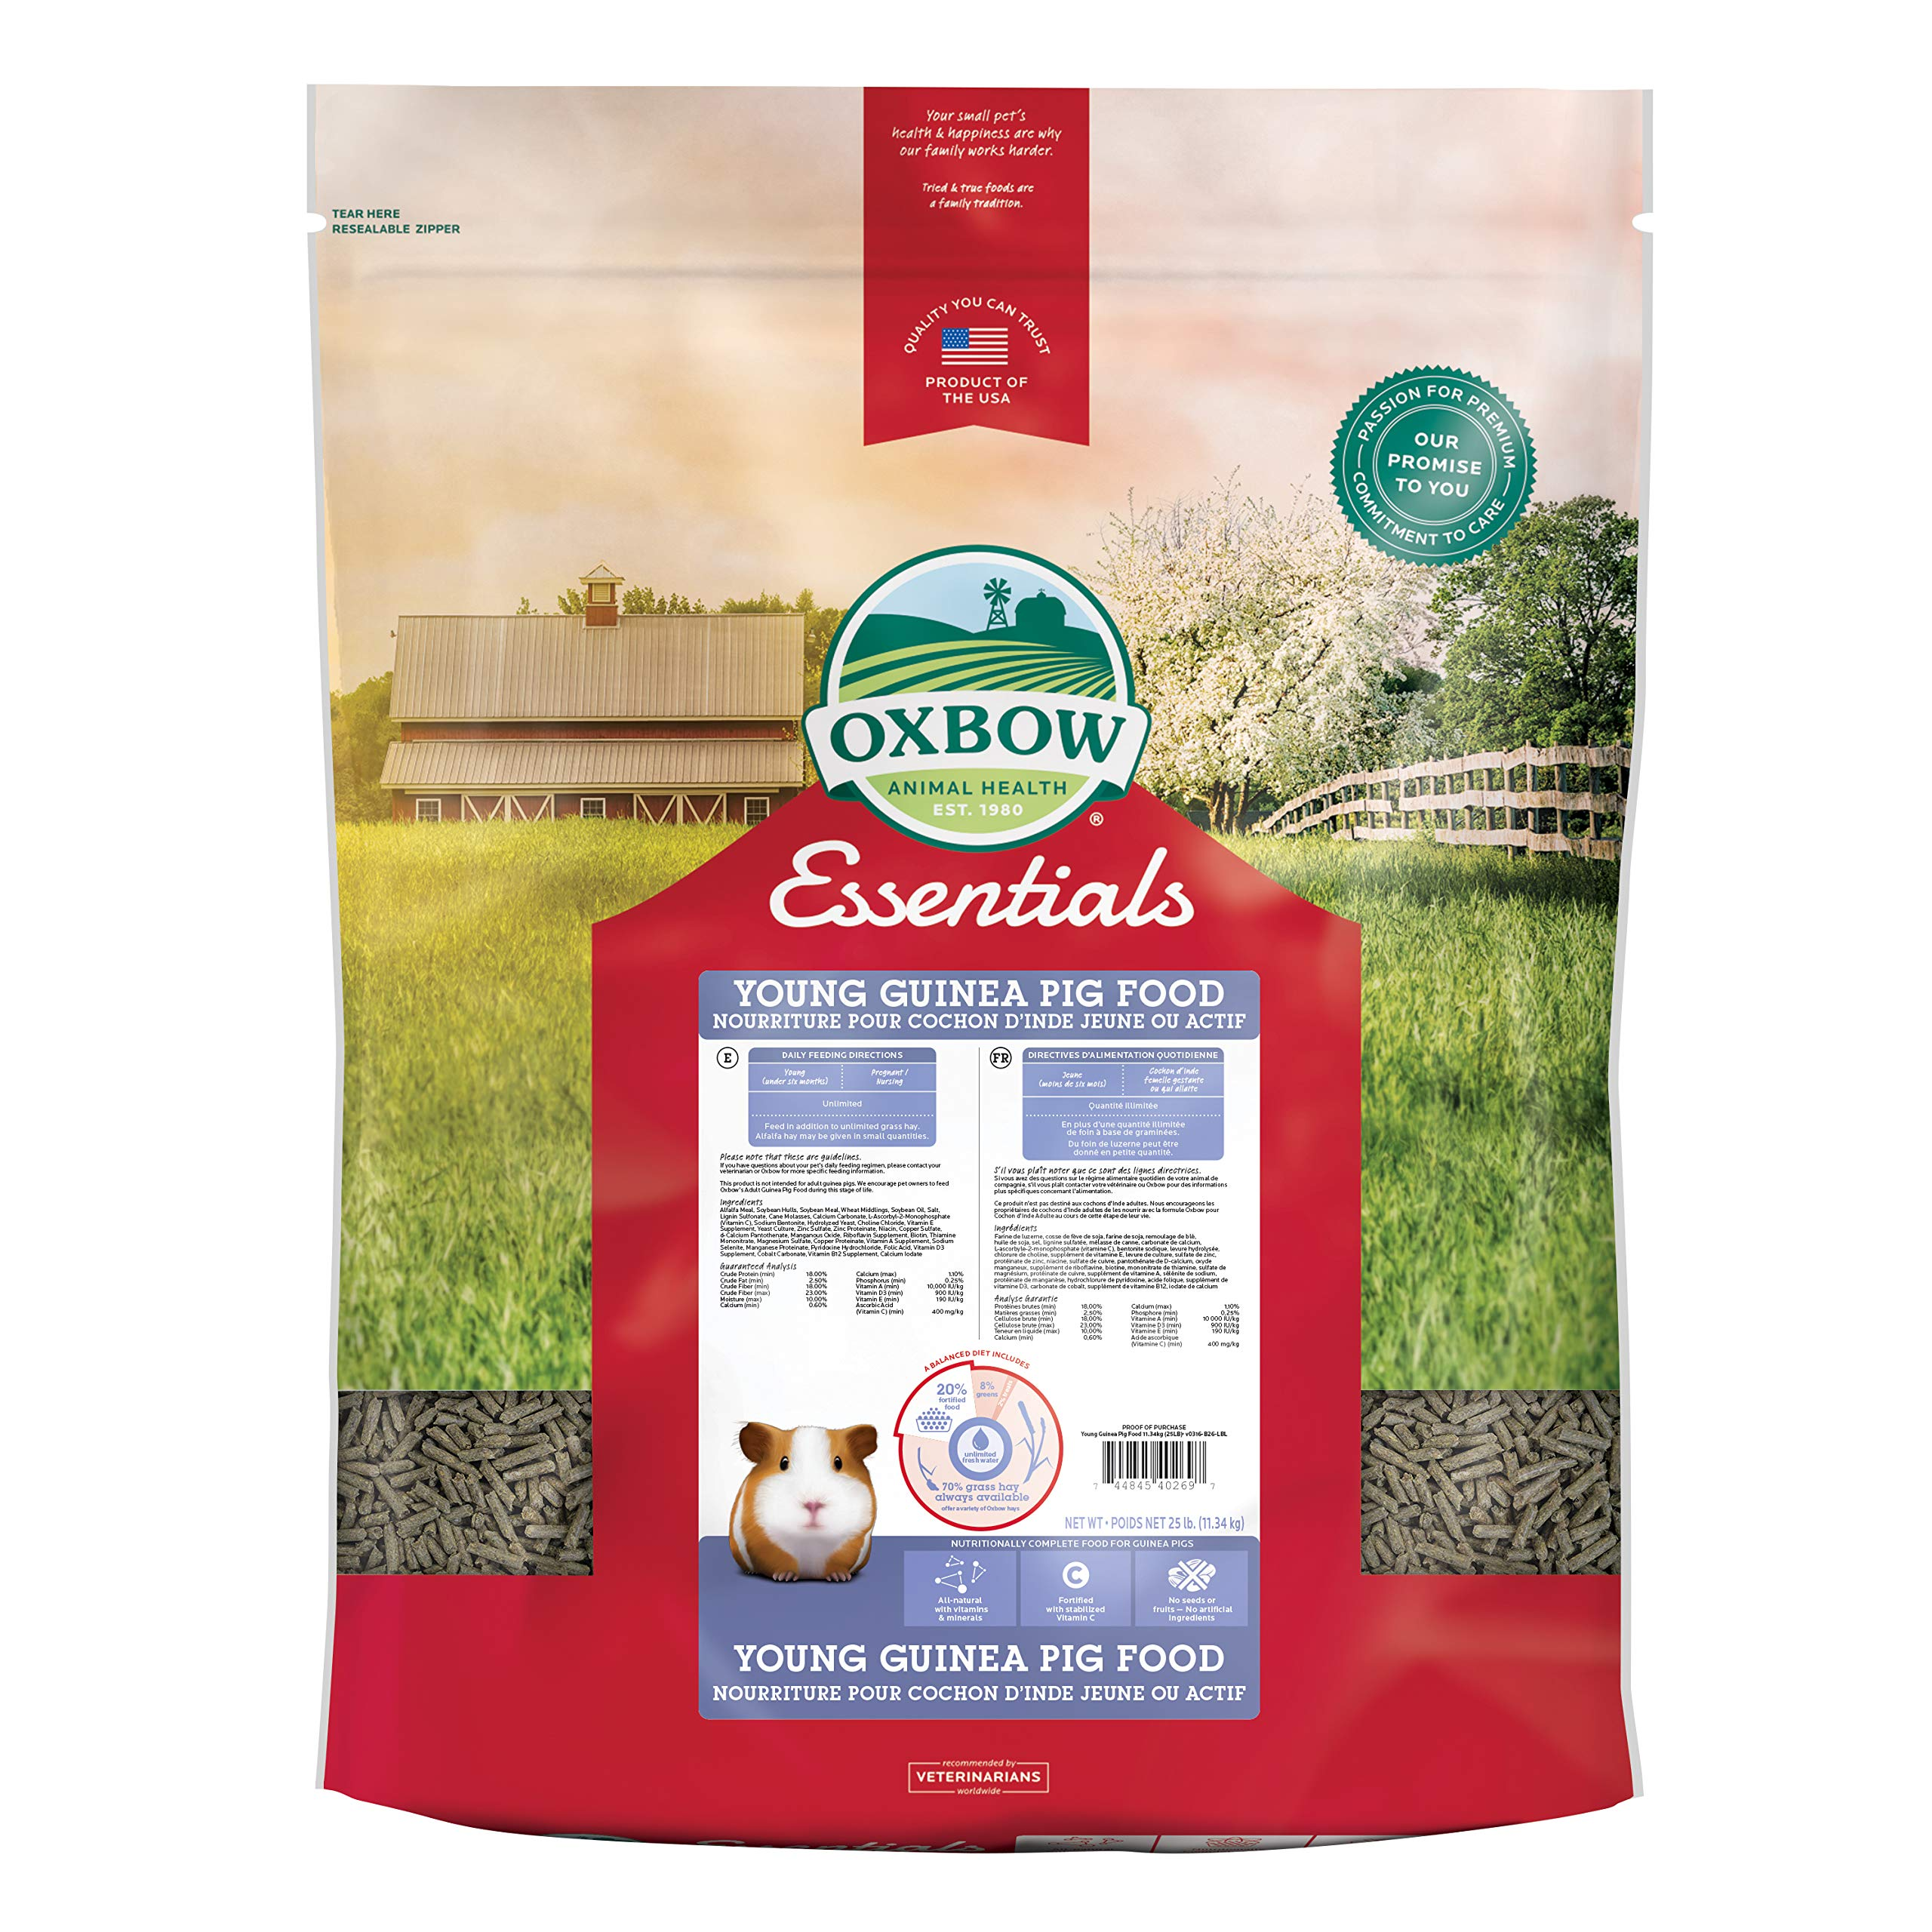 Oxbow Animal Health Cavy Performance Essentials Young Guinea Pig Food, 25-Pound